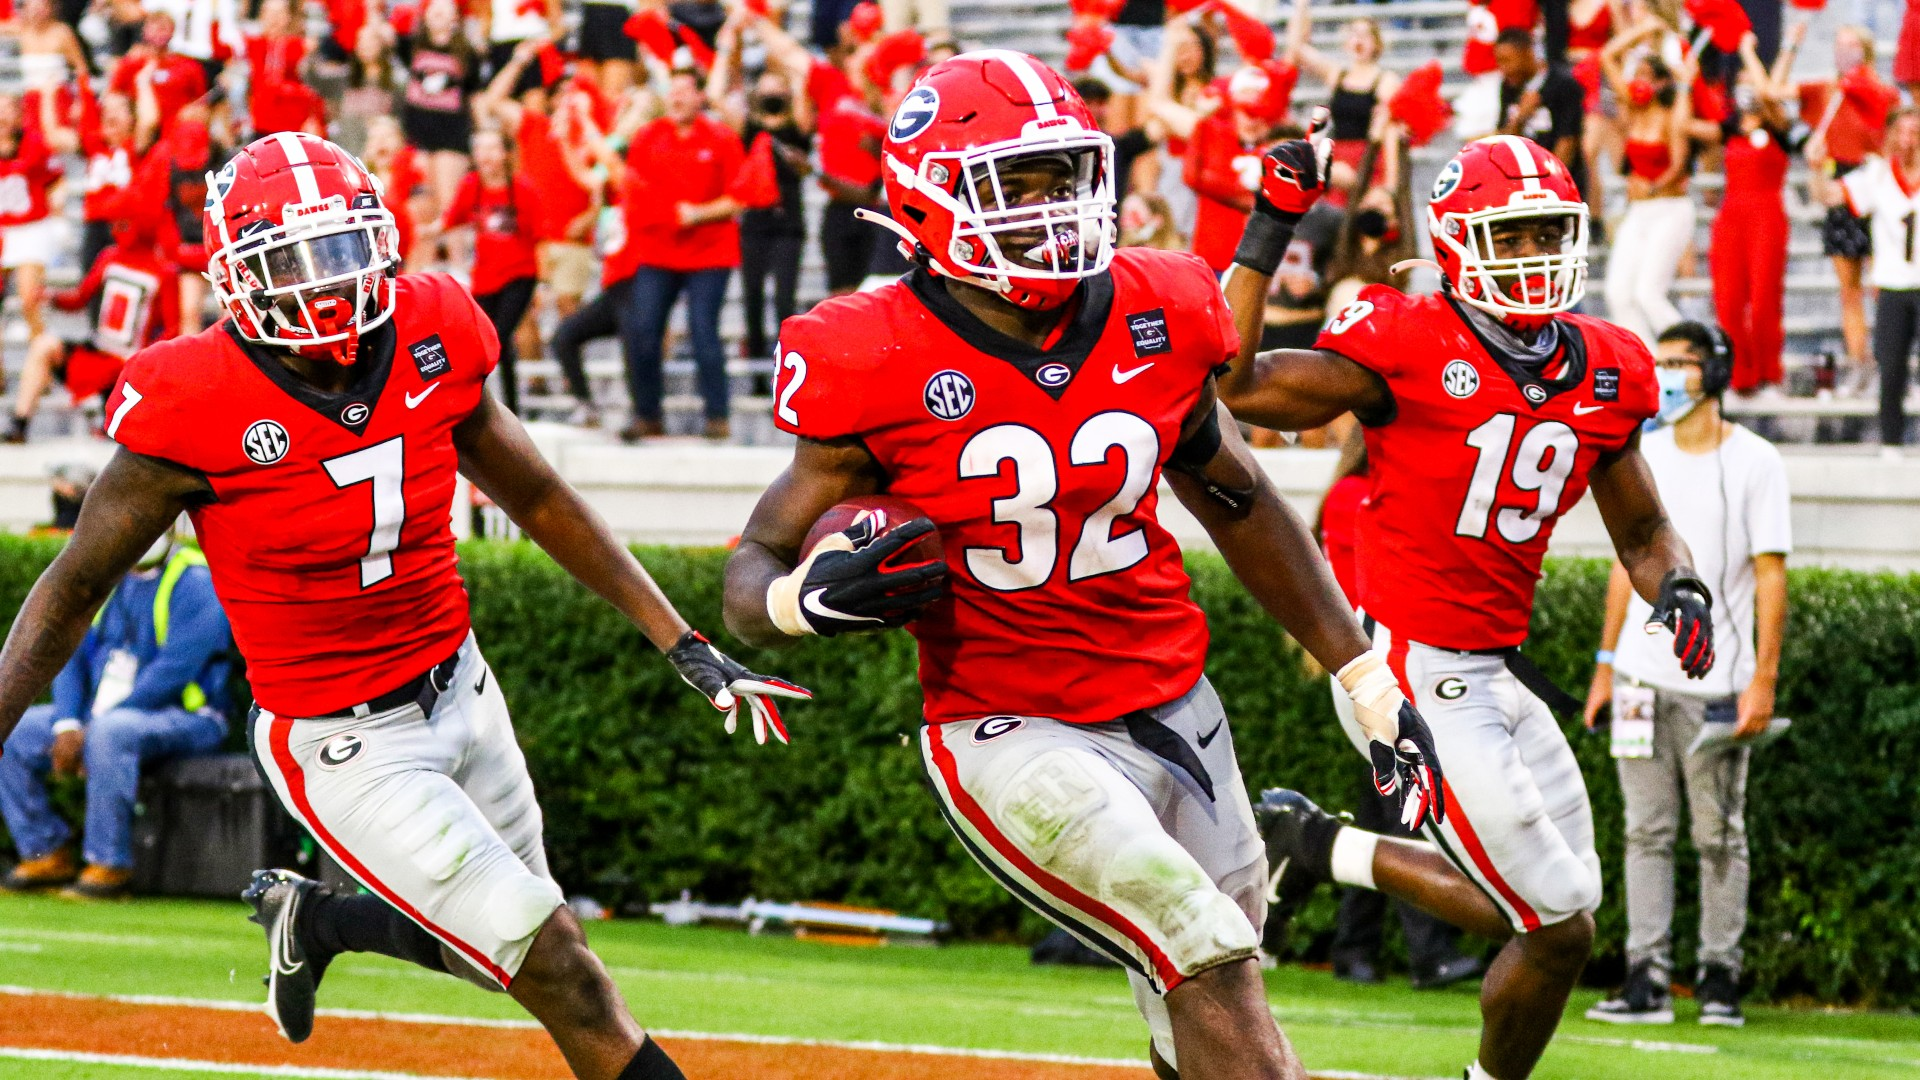 College Football Odds, Betting Picks, Predictions: Alabama vs. Georgia (Saturday, October 17) article feature image